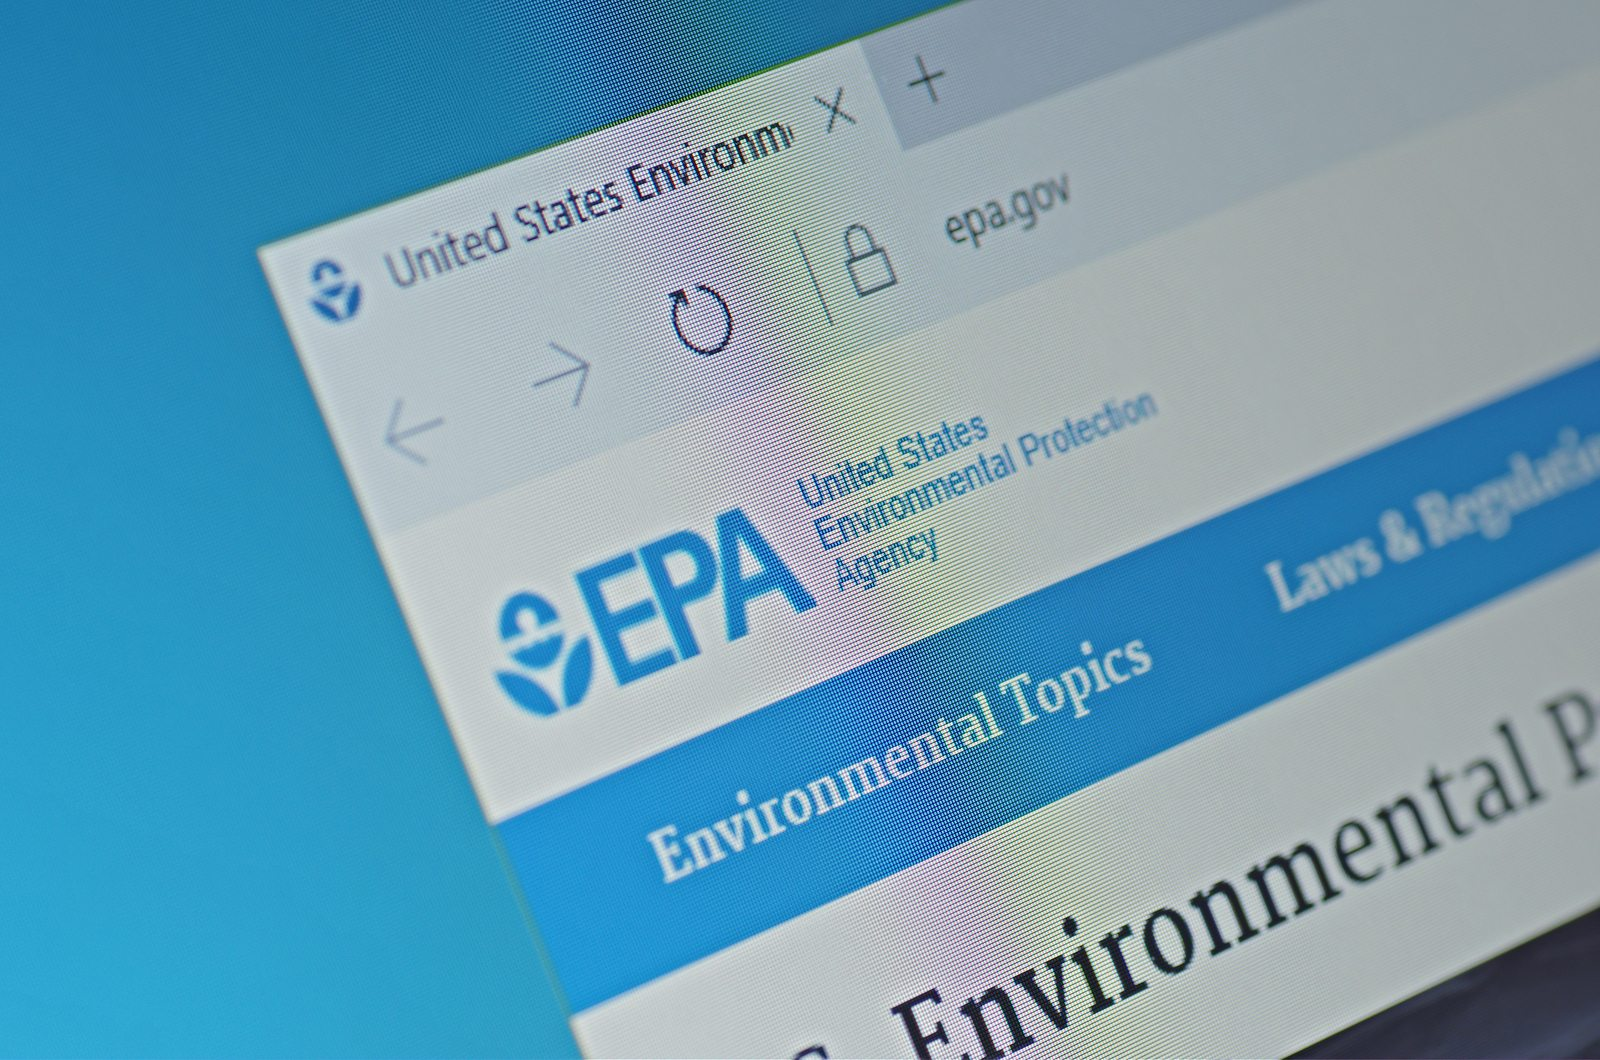 EPA Just Scrubbed Even More Mentions of Climate from Its Web Site